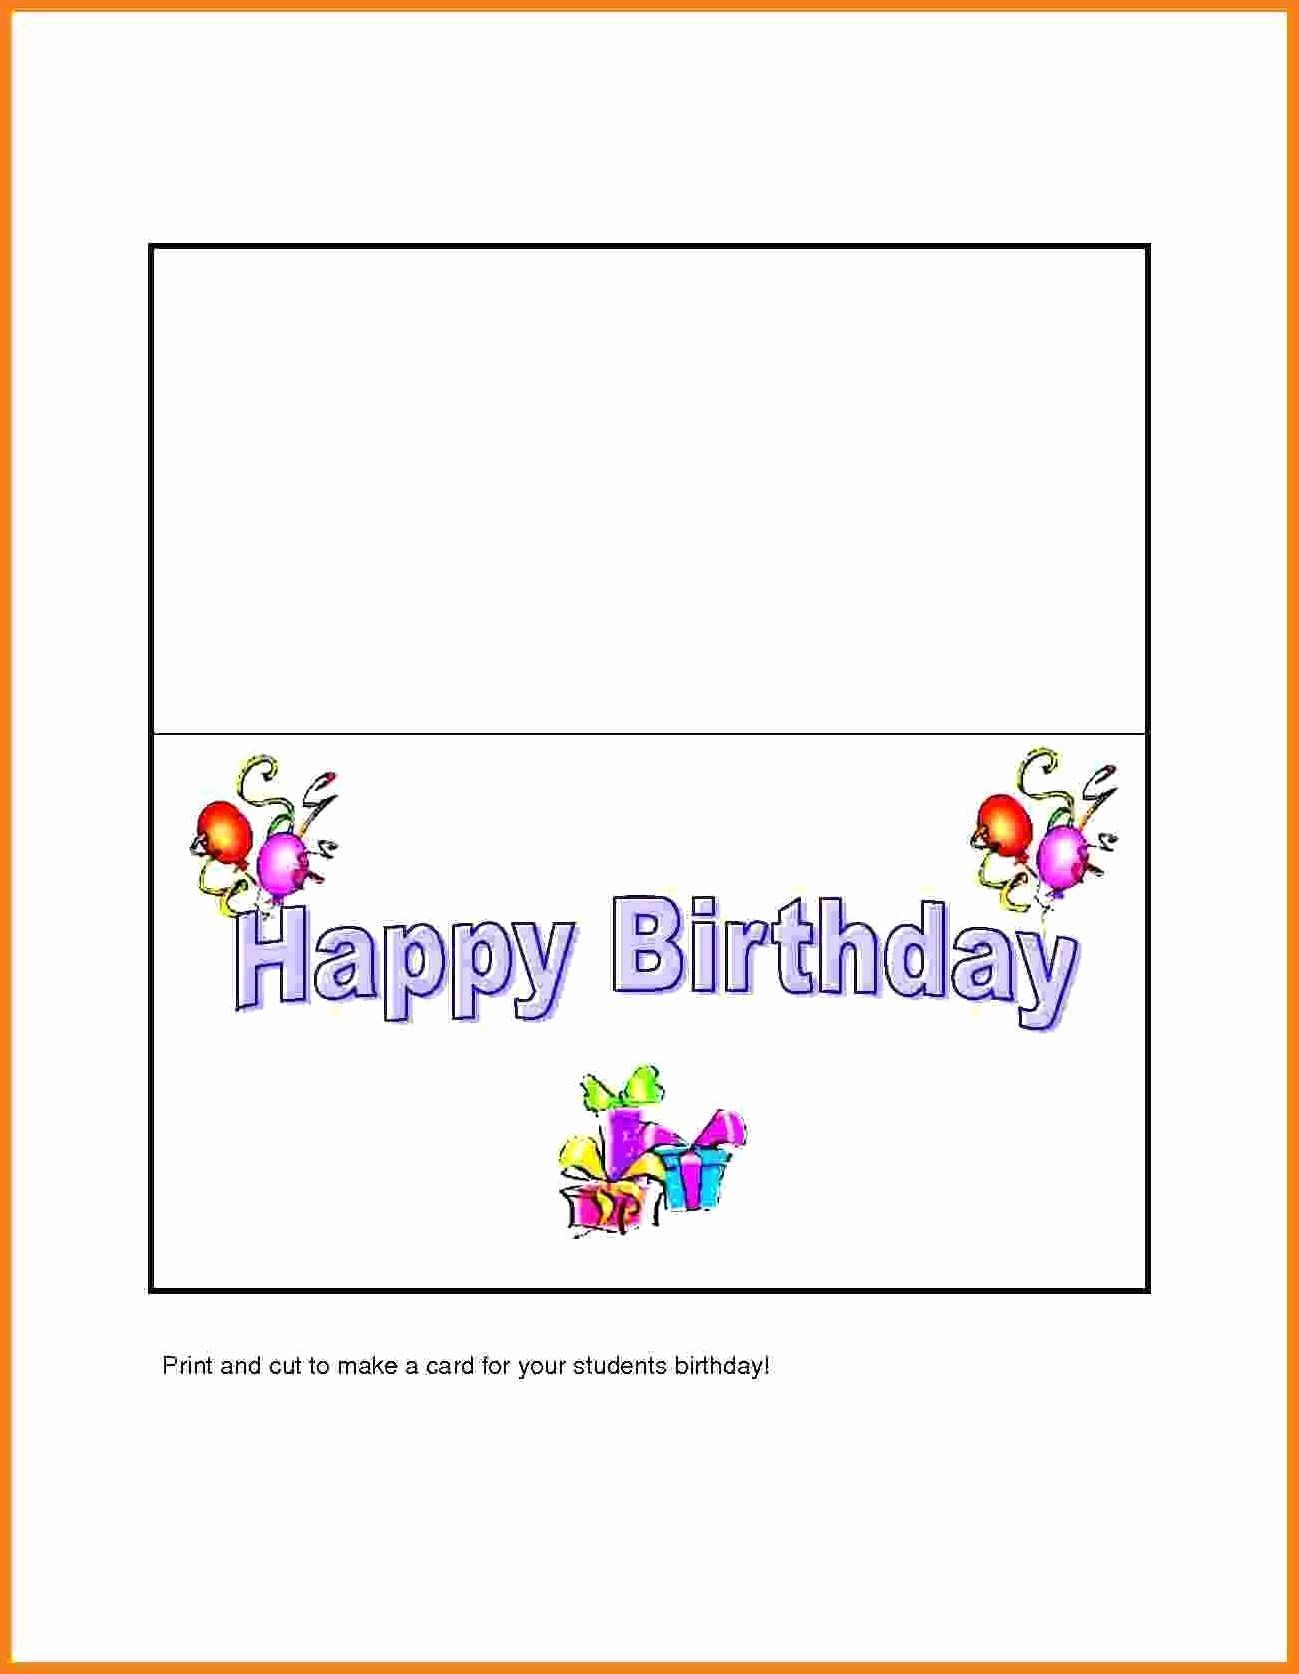 Half Fold Card Template Word Beautiful Microsoft Word Birthday Card Template Lovely Half Fo Birthday Card Template Happy Birthday Template Happy Birthday Cards